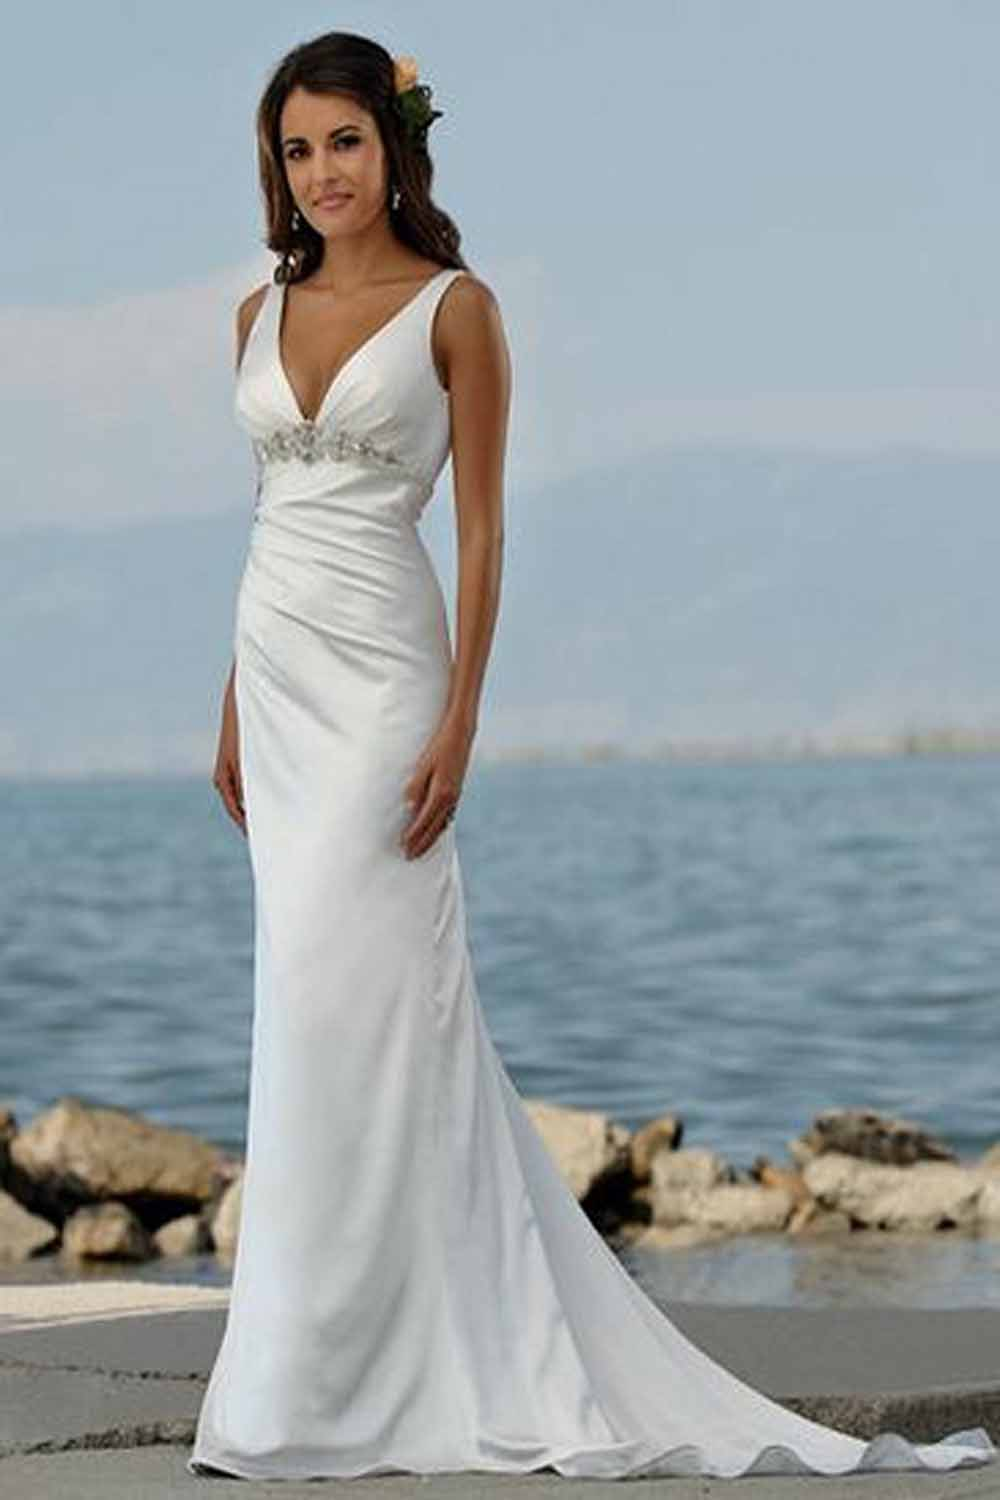 Summer beach wedding dresses 2012 summer beach wedding for Summer dresses for wedding